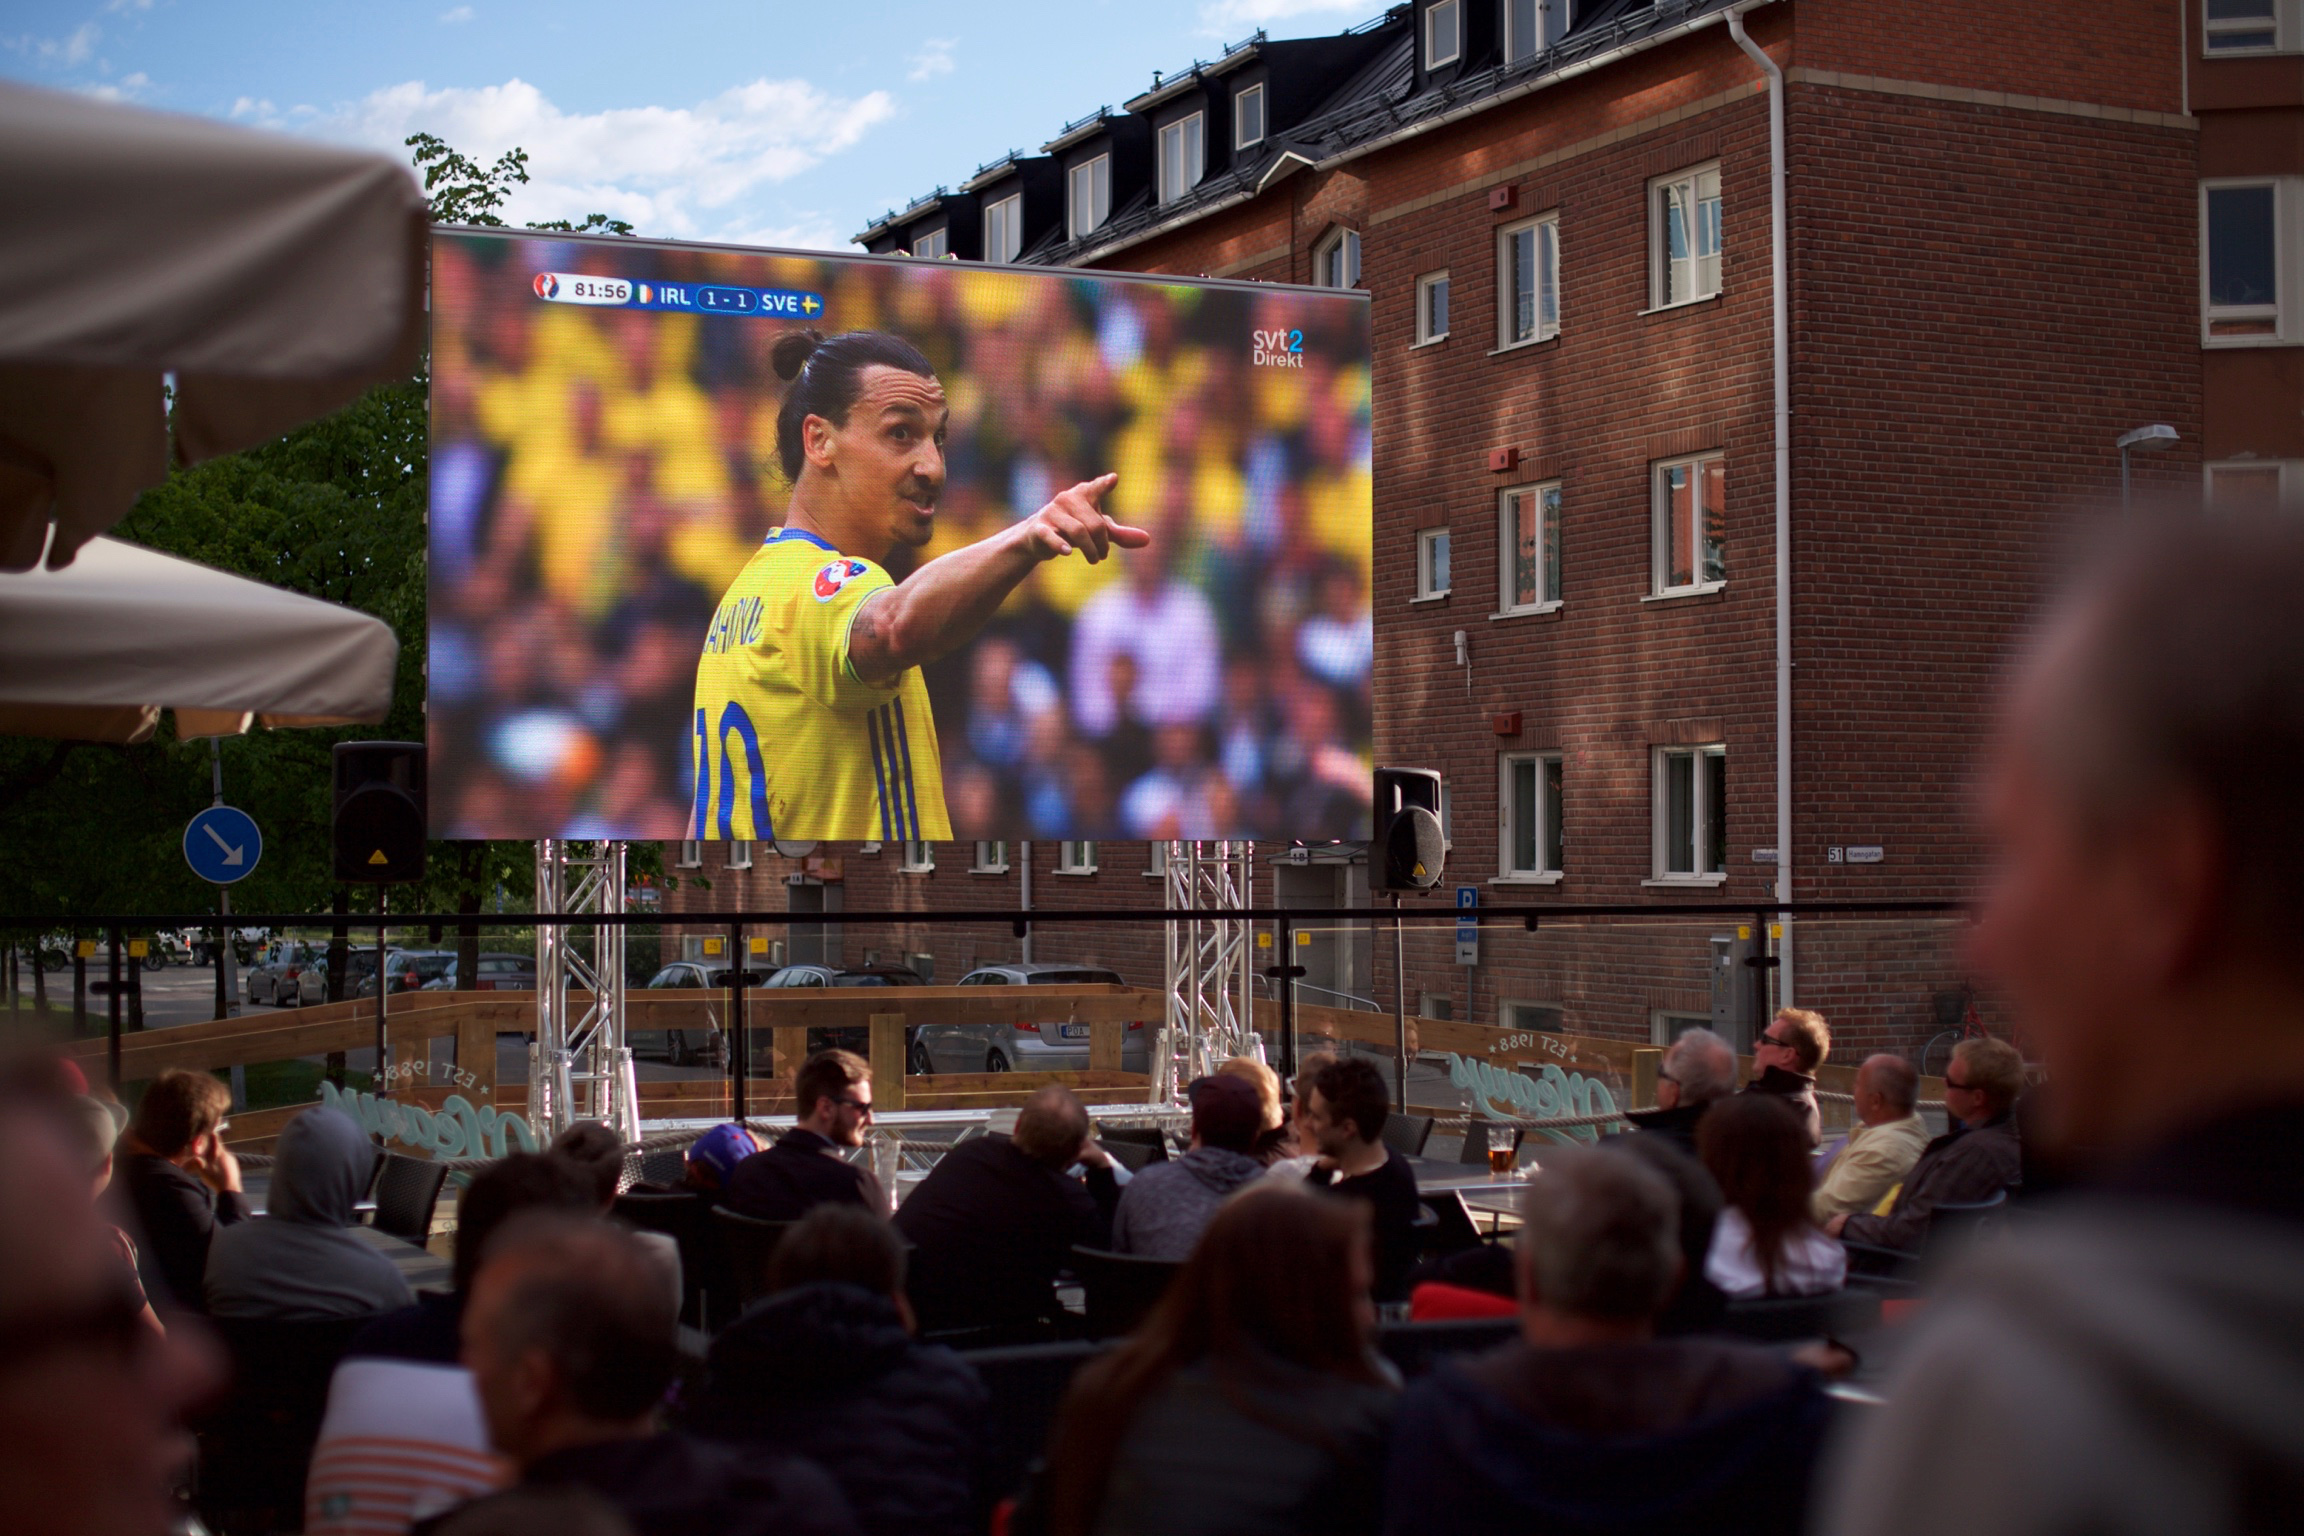 Lets Display LED Storbildsskärm visar Fotbolls-EM